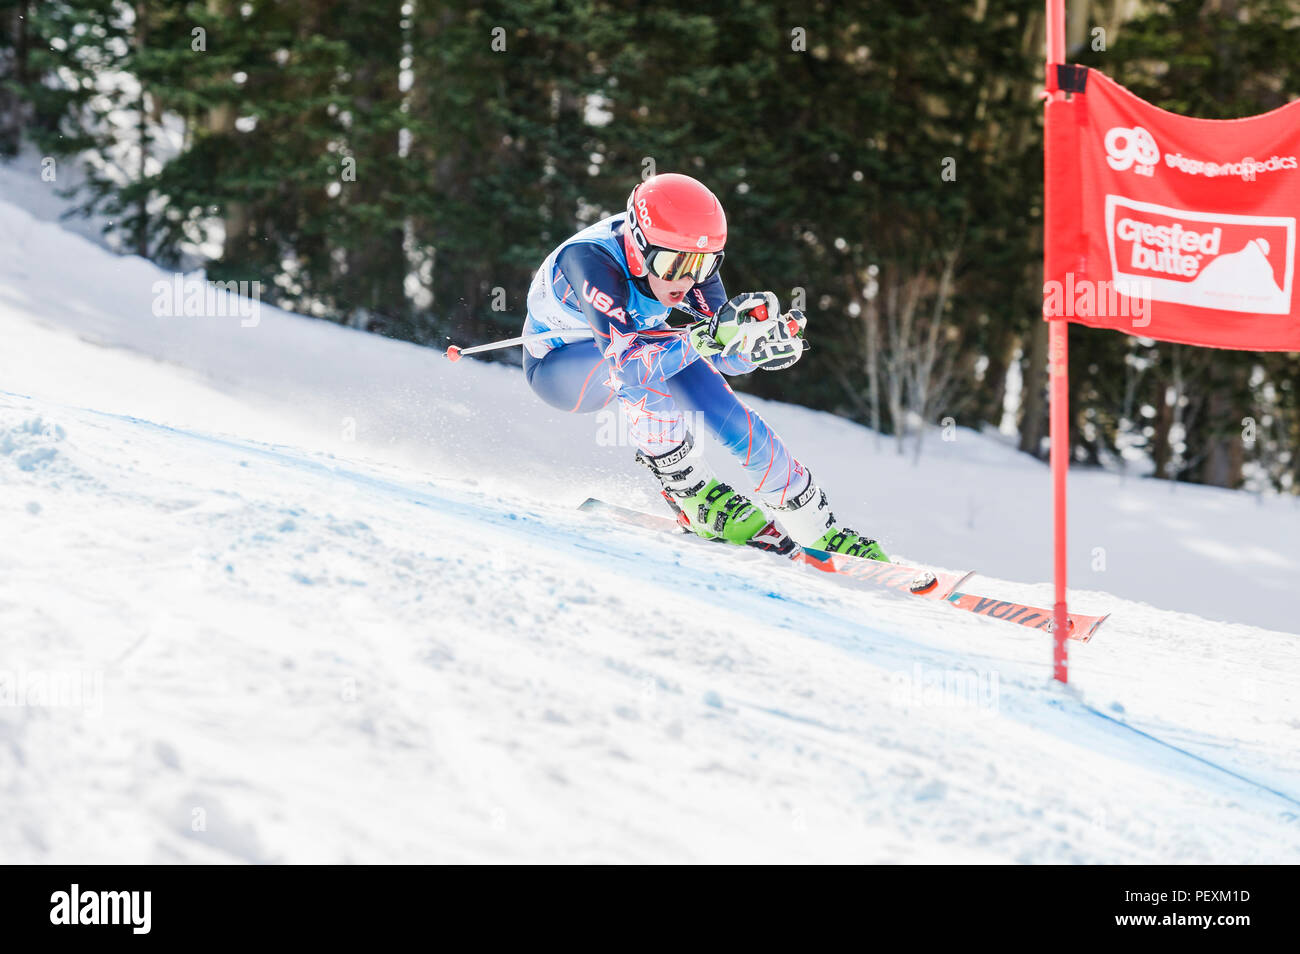 Downhill skiing, Crested Butte, Colorado, USA - Stock Image